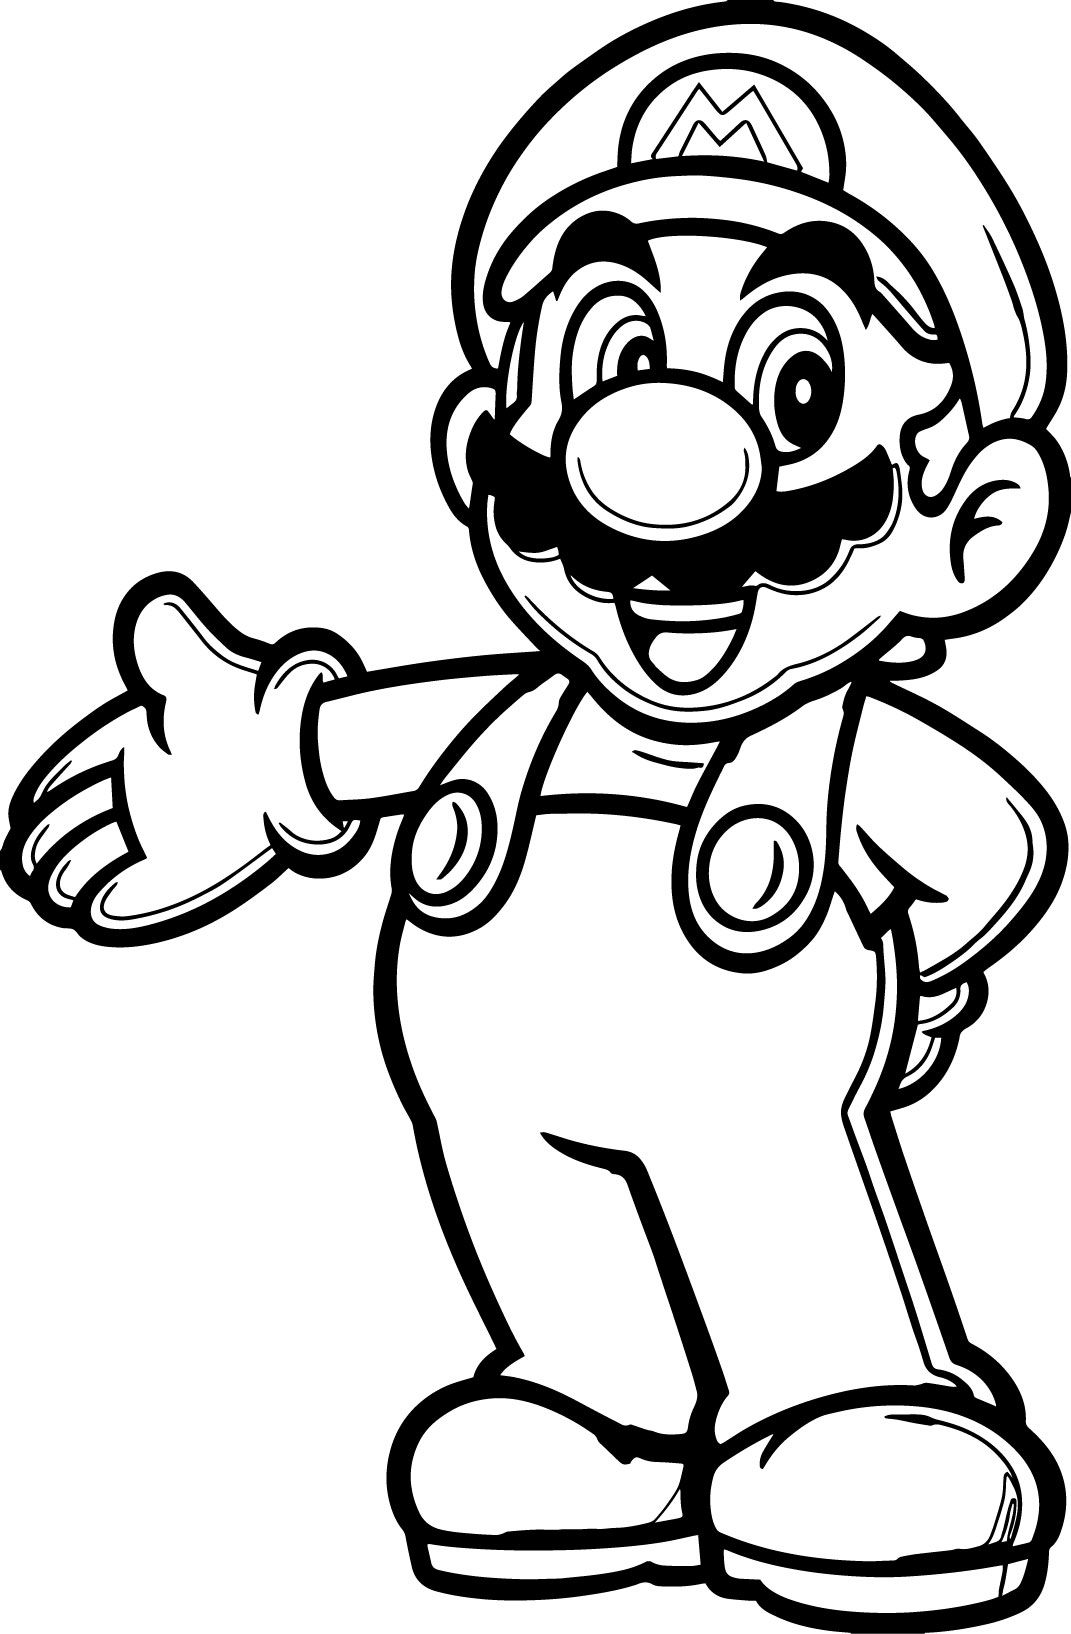 Mario Coloring Pages Coloring Rocks Super Mario Coloring Pages Cartoon Coloring Pages Mario Coloring Pages